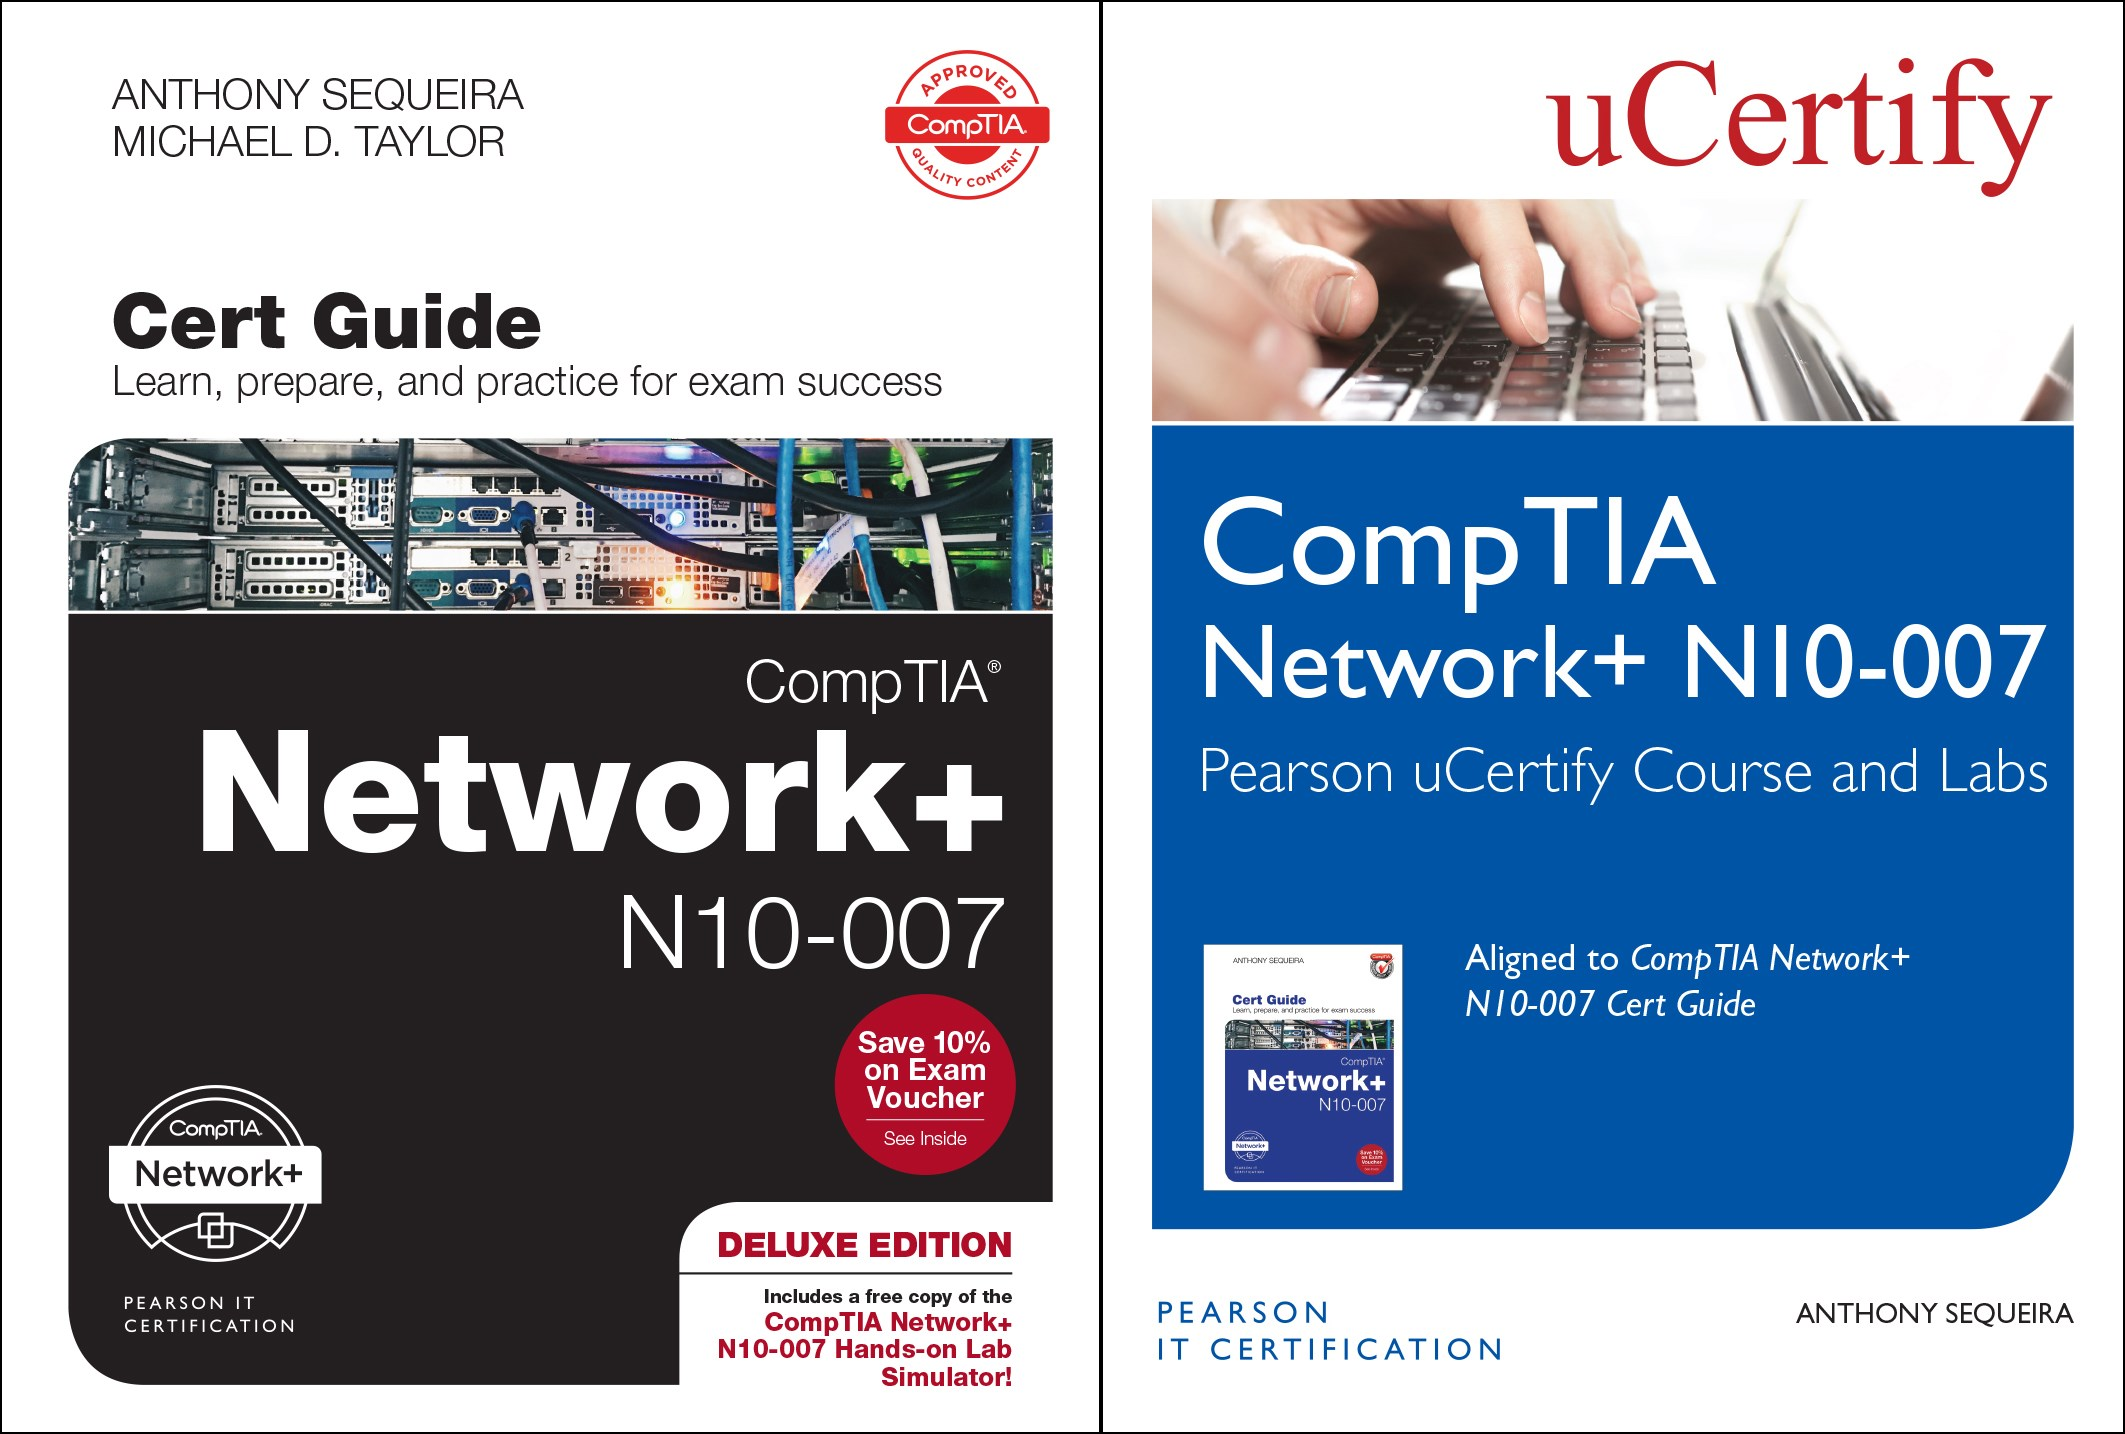 CompTIA Network+ N10-007 Pearson uCertify Course and Labs and Textbook Bundle